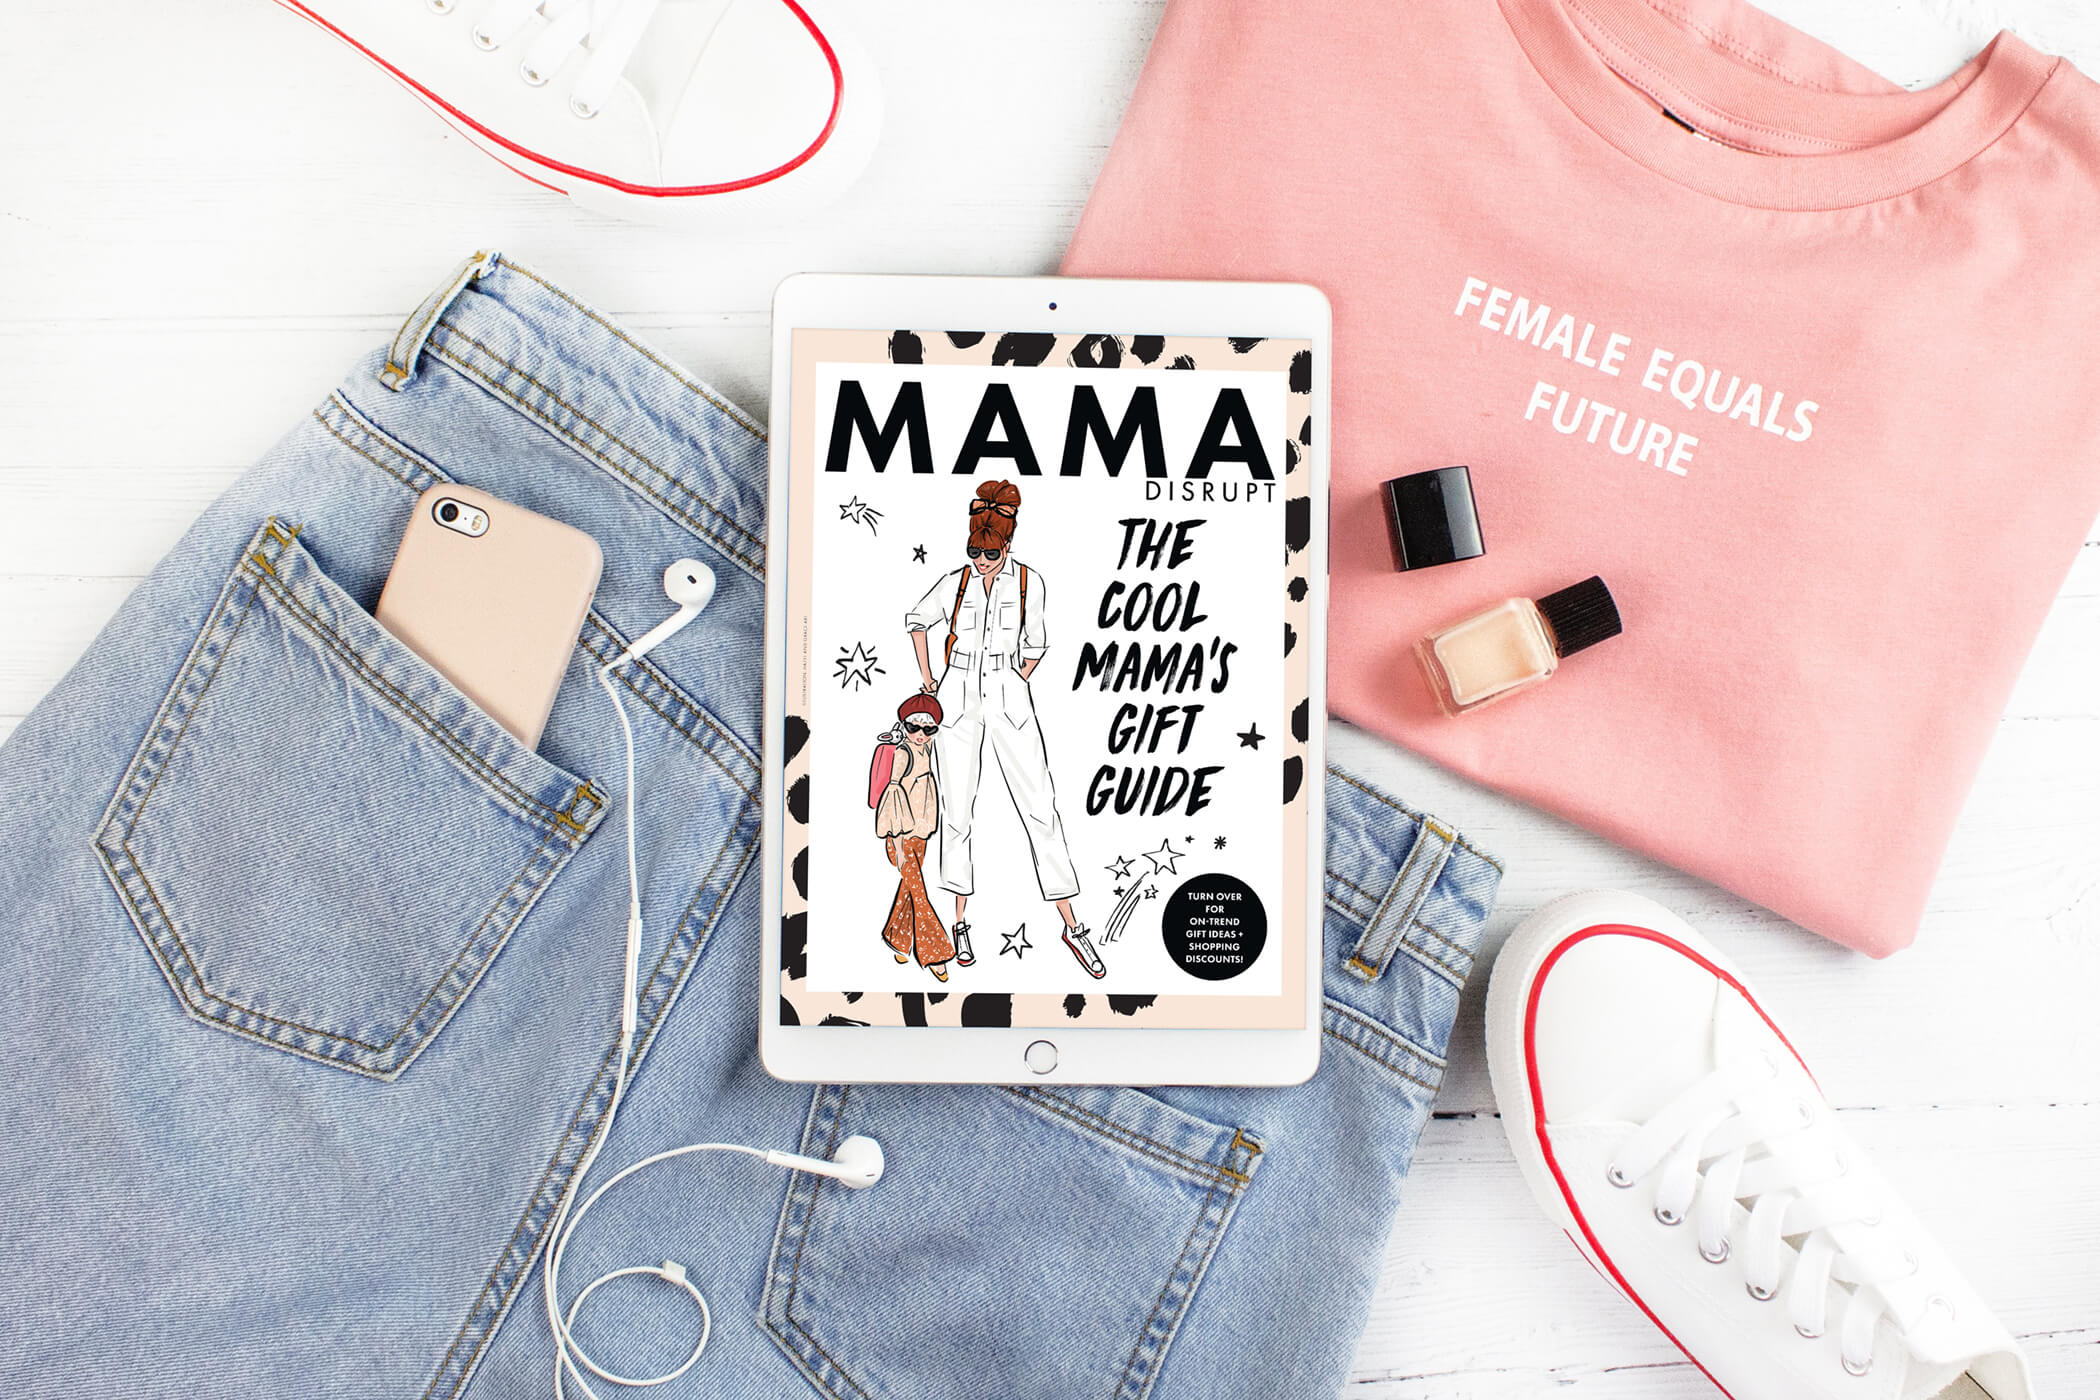 Mama Disrupt The Cool Mama's Gift Guide Christmas Gifts Giving Presents Baby Gifts Mama Gift Dad Gifts